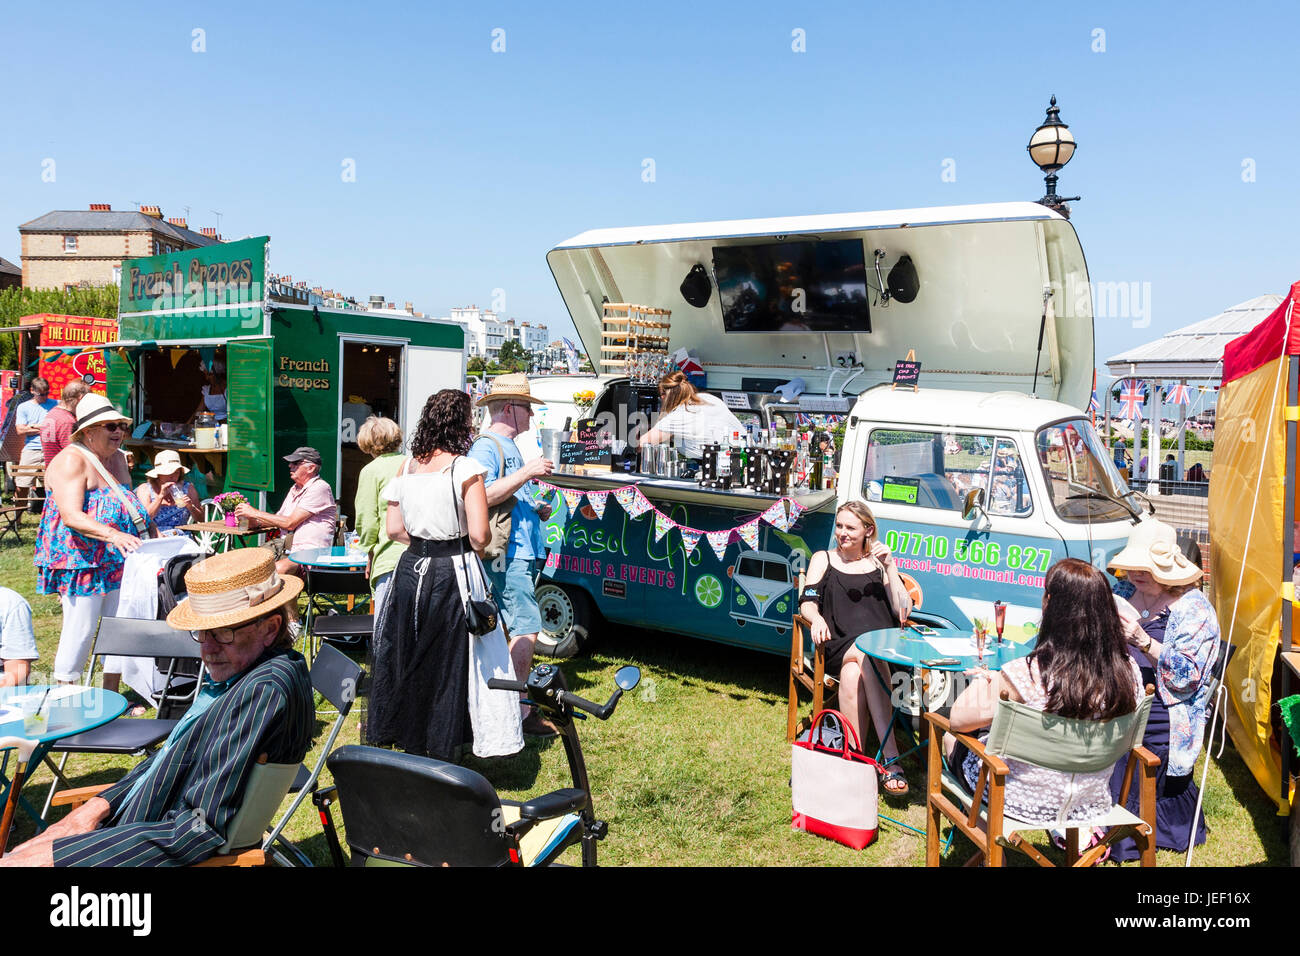 Bar On Wheels High Resolution Stock Photography And Images Alamy